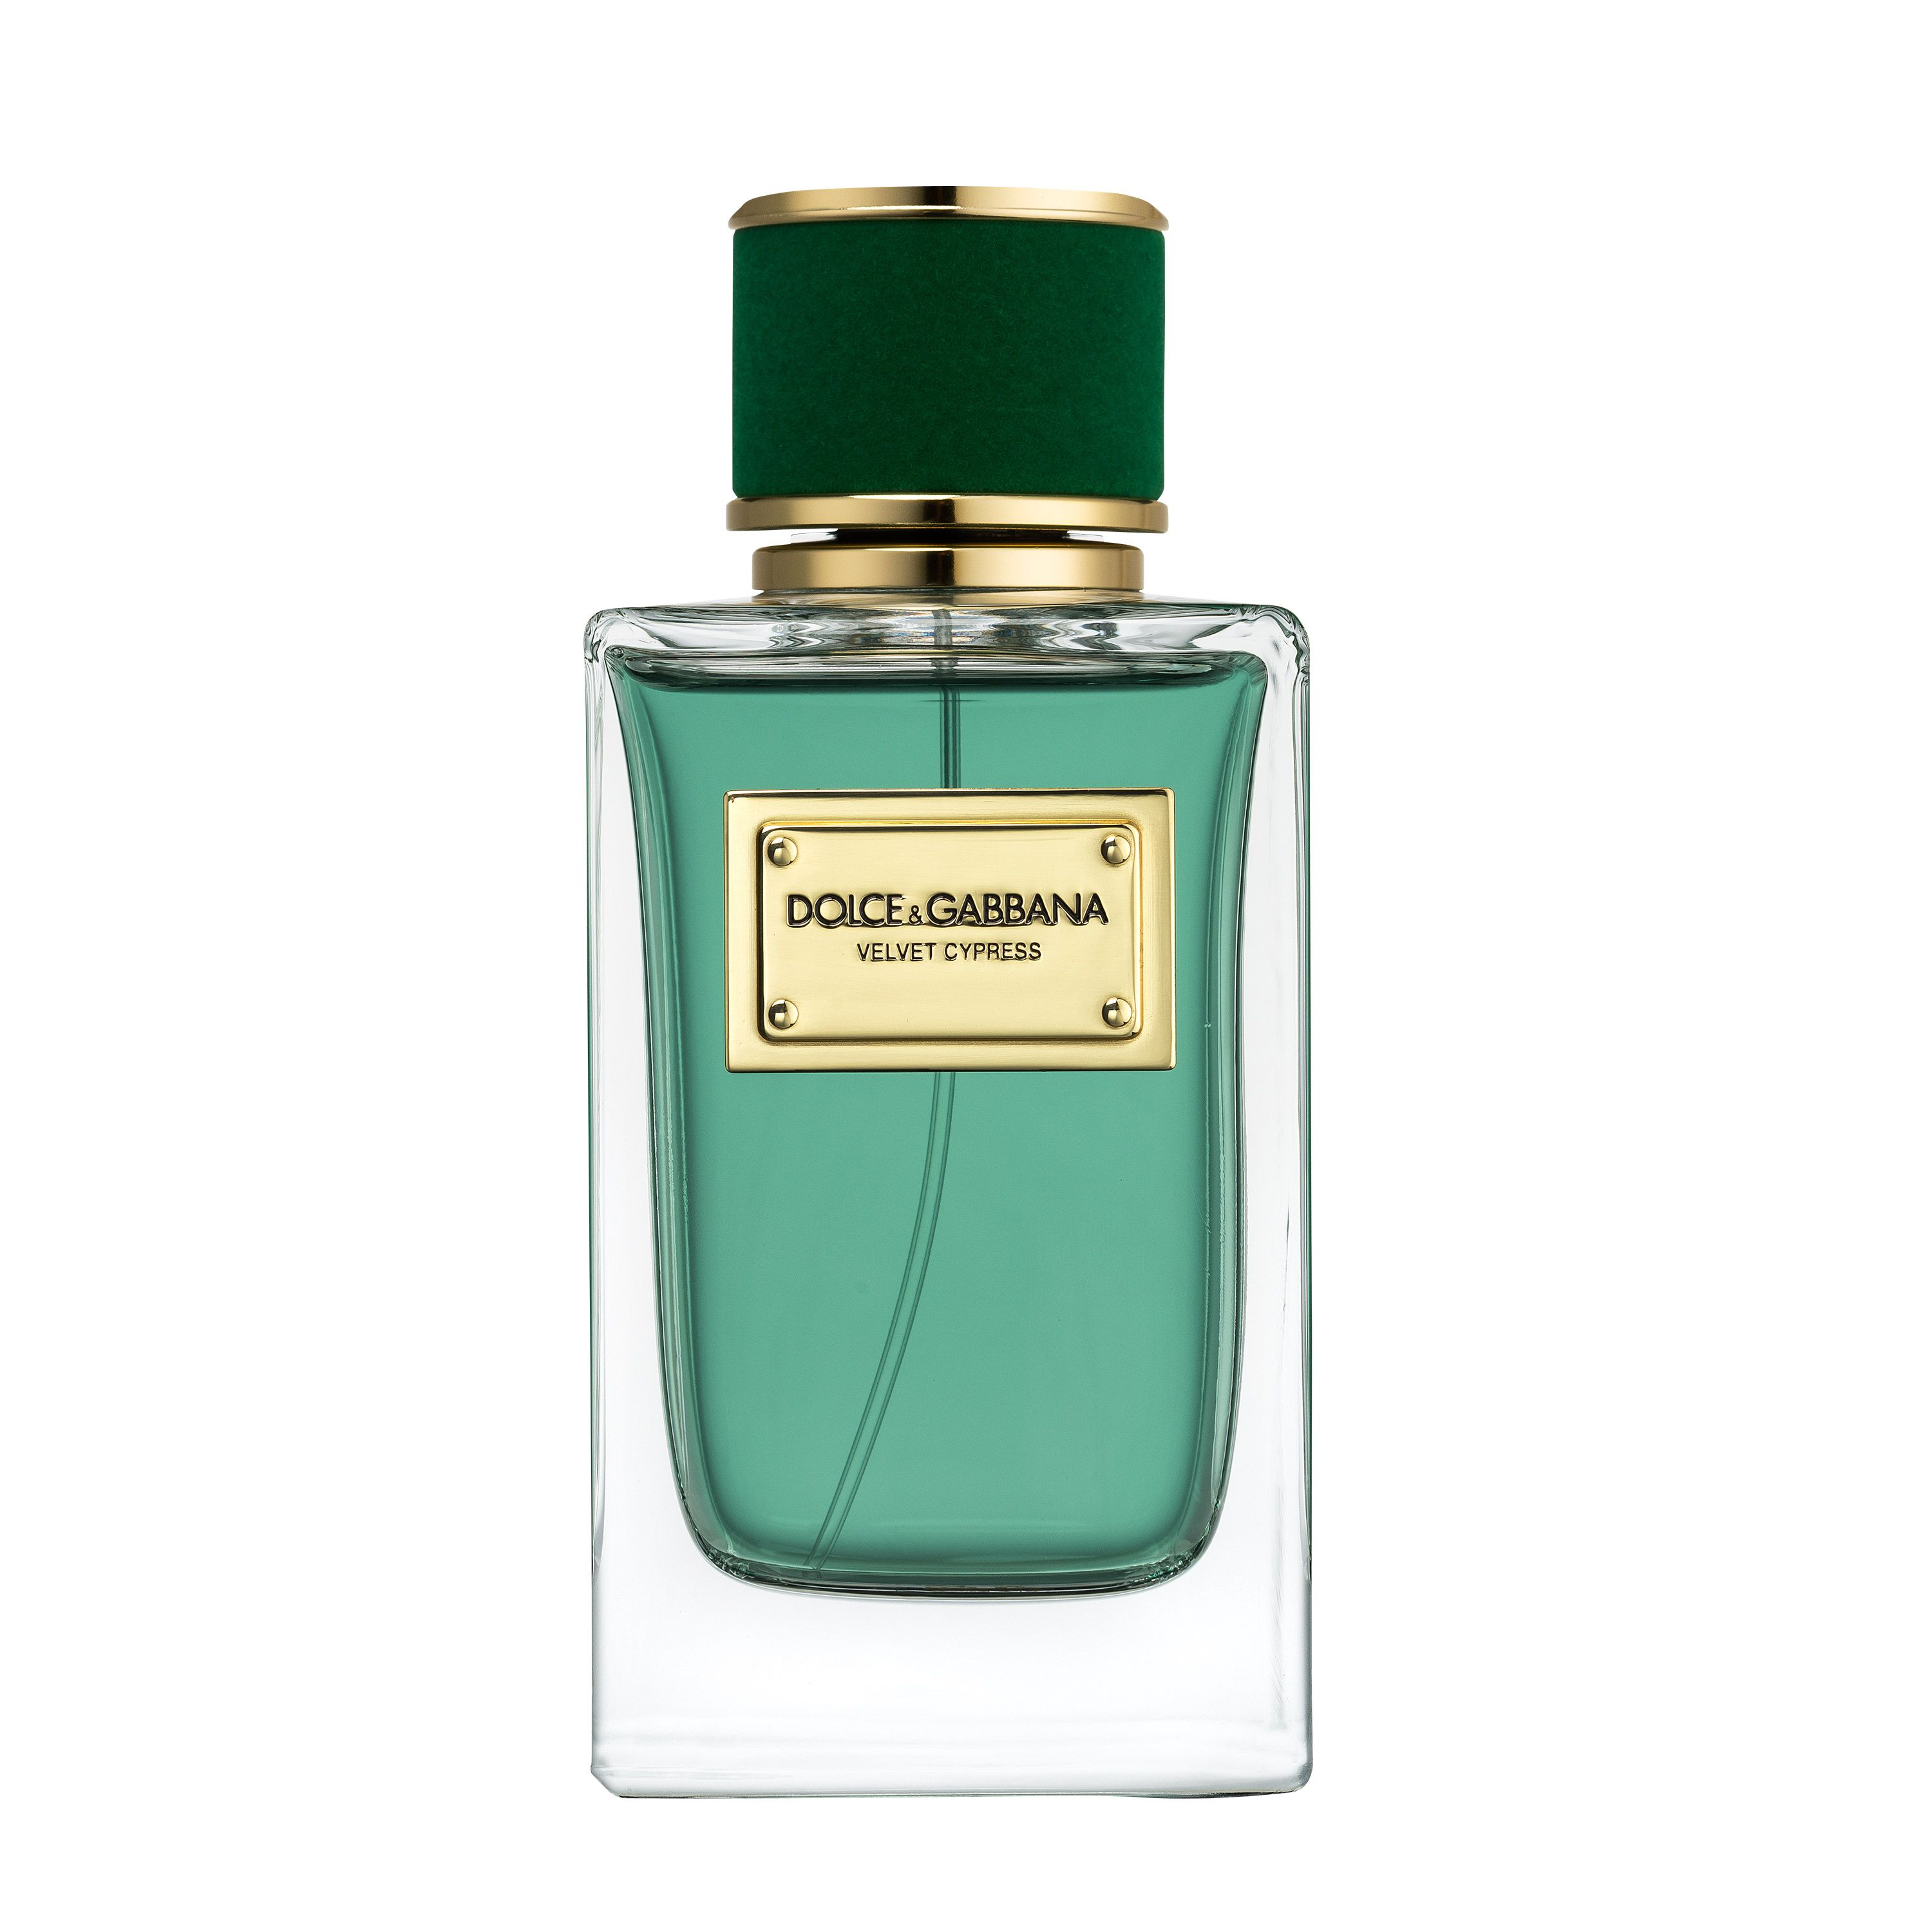 14 of the best gender-neutral fragrances - New unisex perfumes f44ce4bc5d